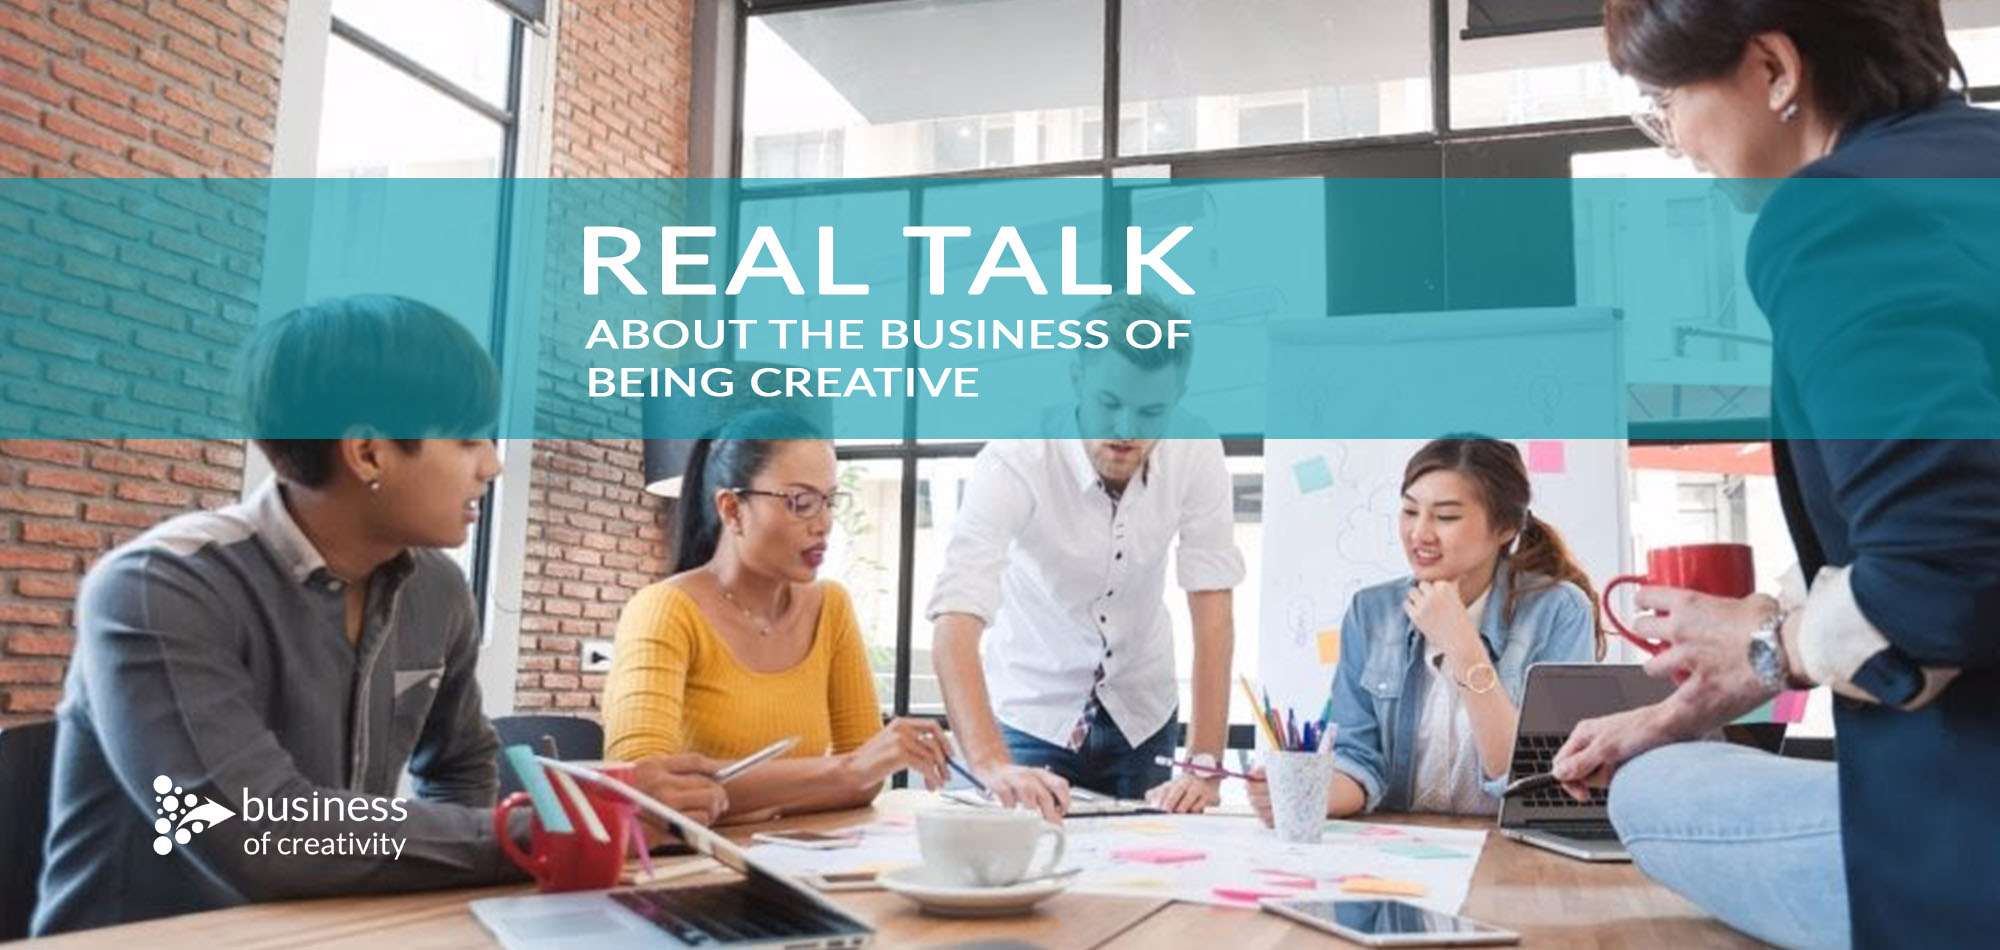 Real Talk - a group mastermind about the business of creativity